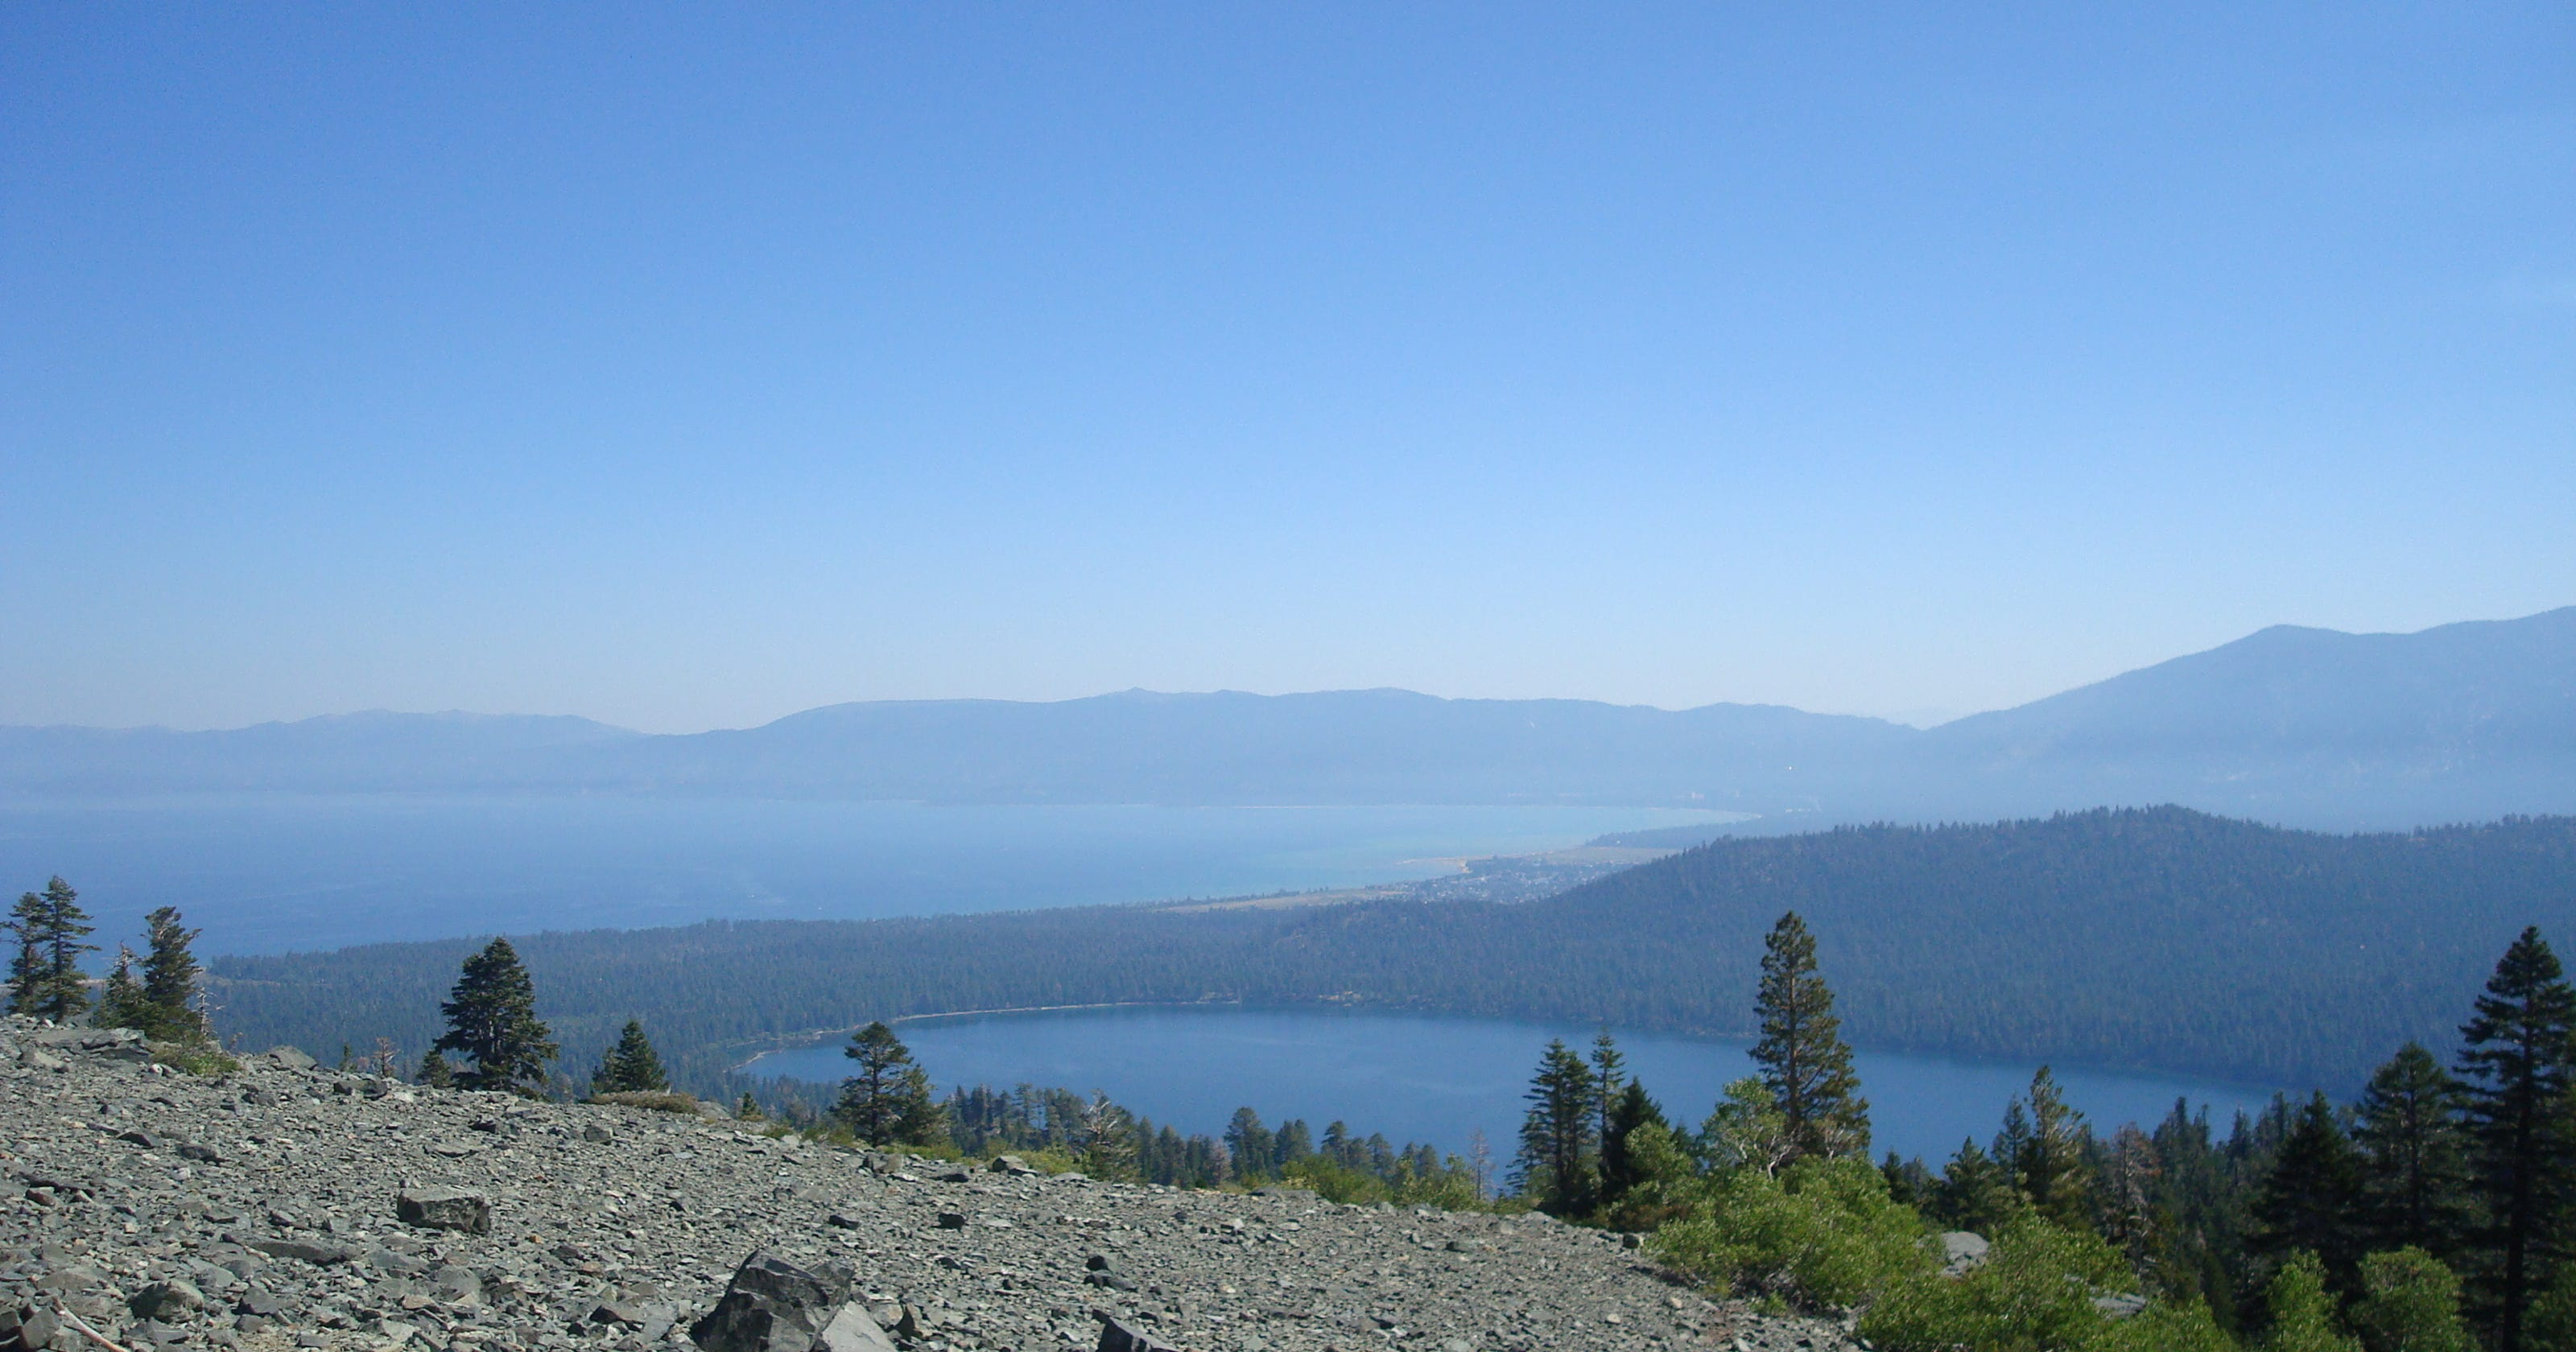 Body Found In Lake Near Tahoe With Rope Anchor Tied To Legs